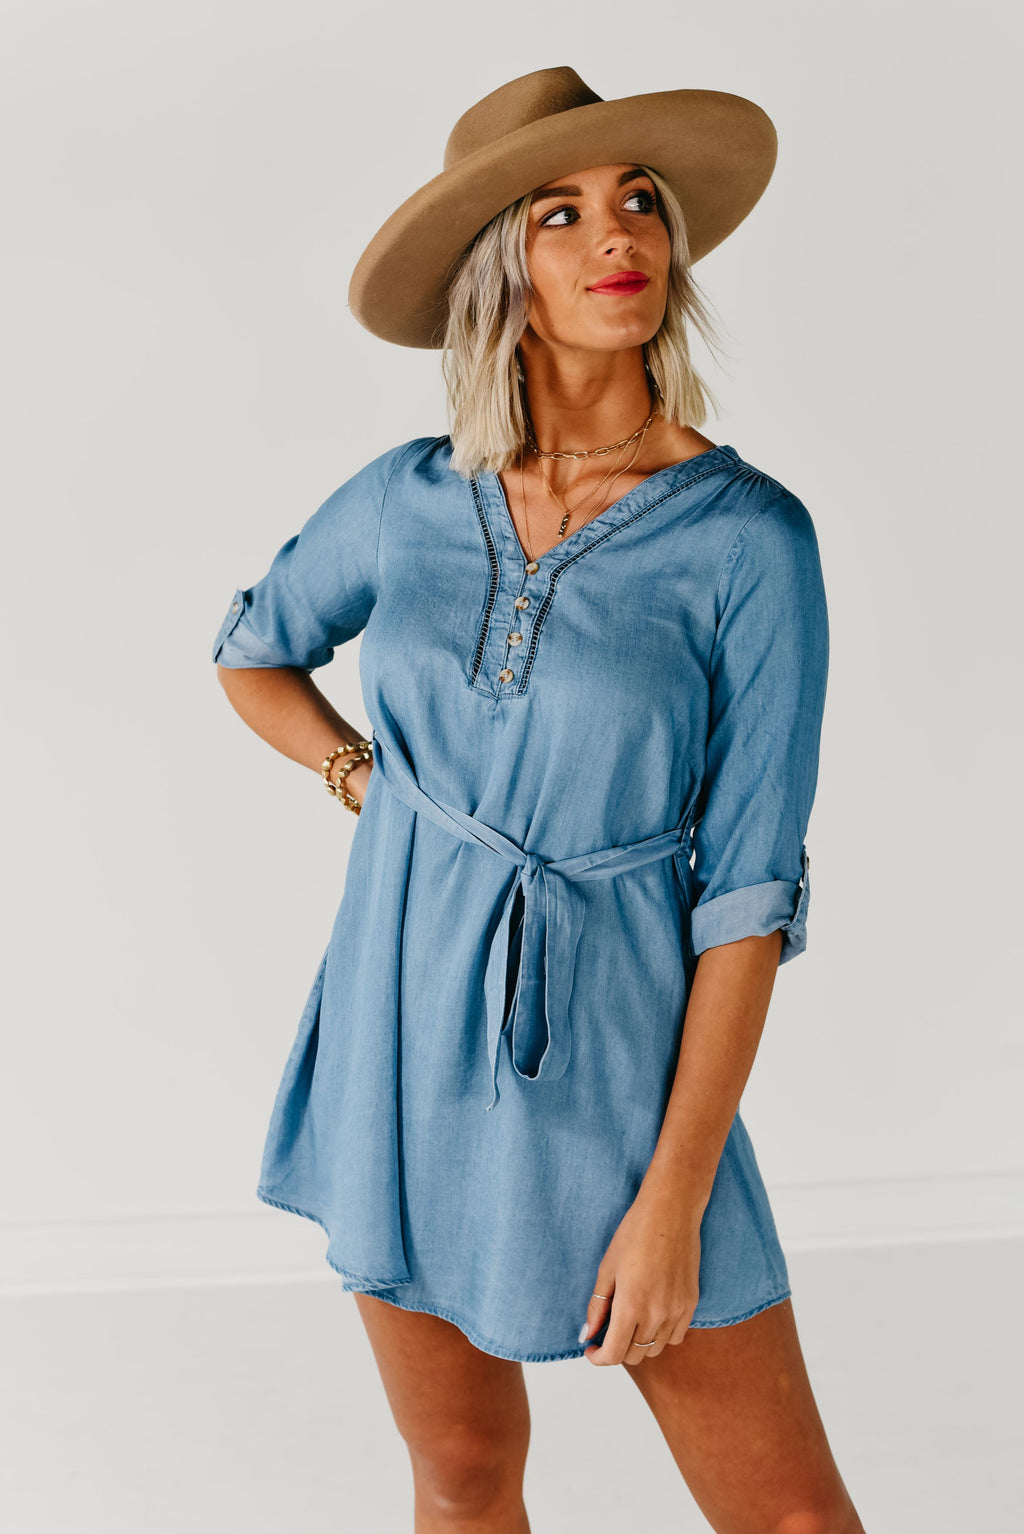 The Orion Dress - Chambray